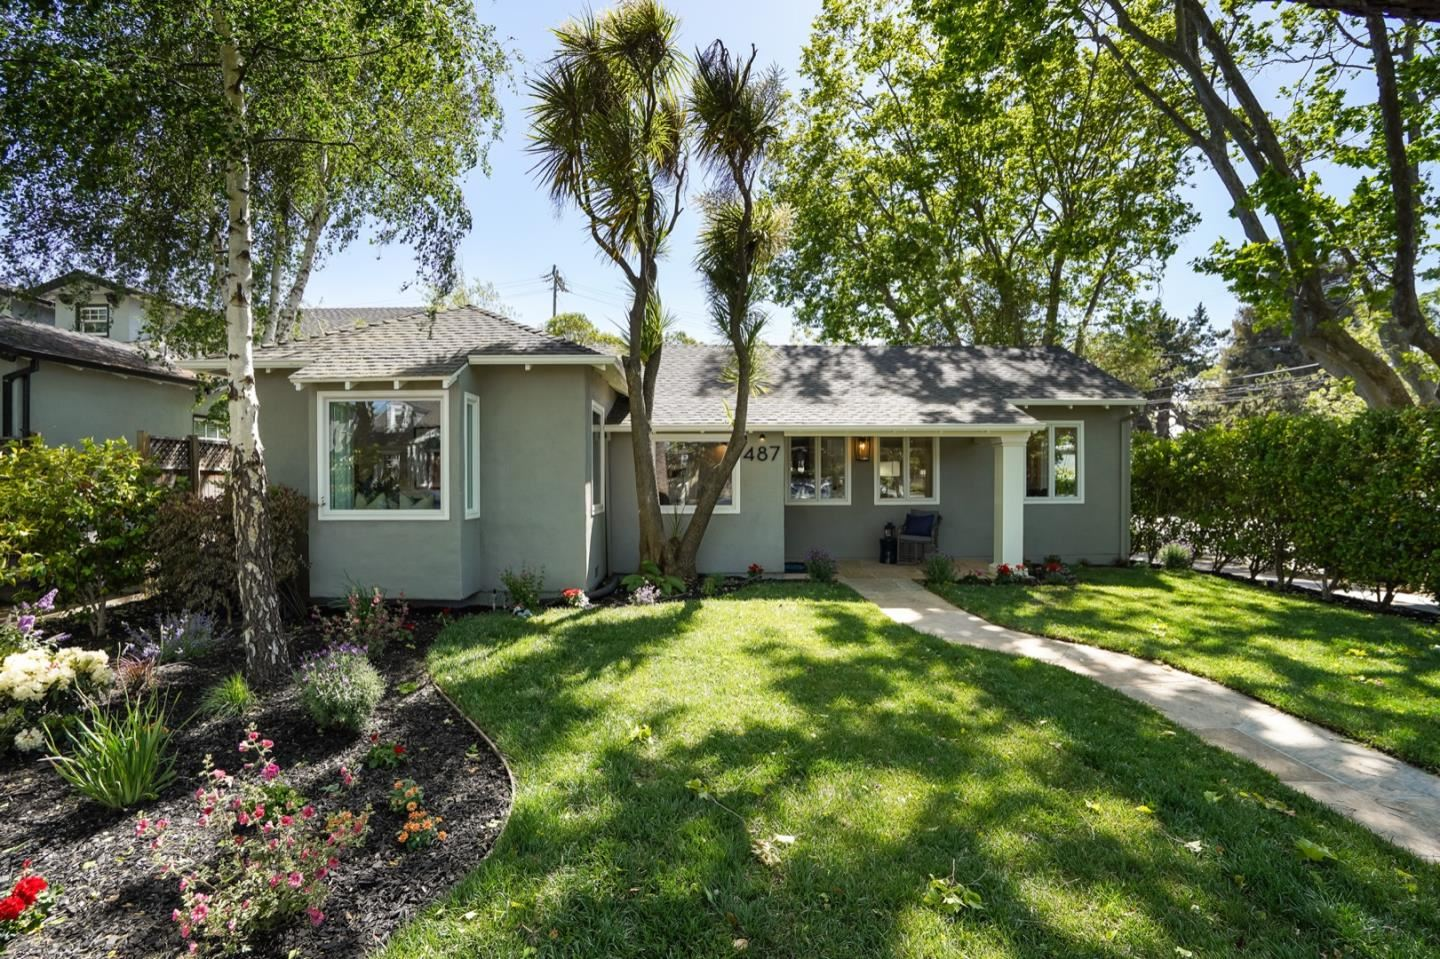 Photo for 487 Chatham Road, BURLINGAME, CA 94010 (MLS # ML81844906)